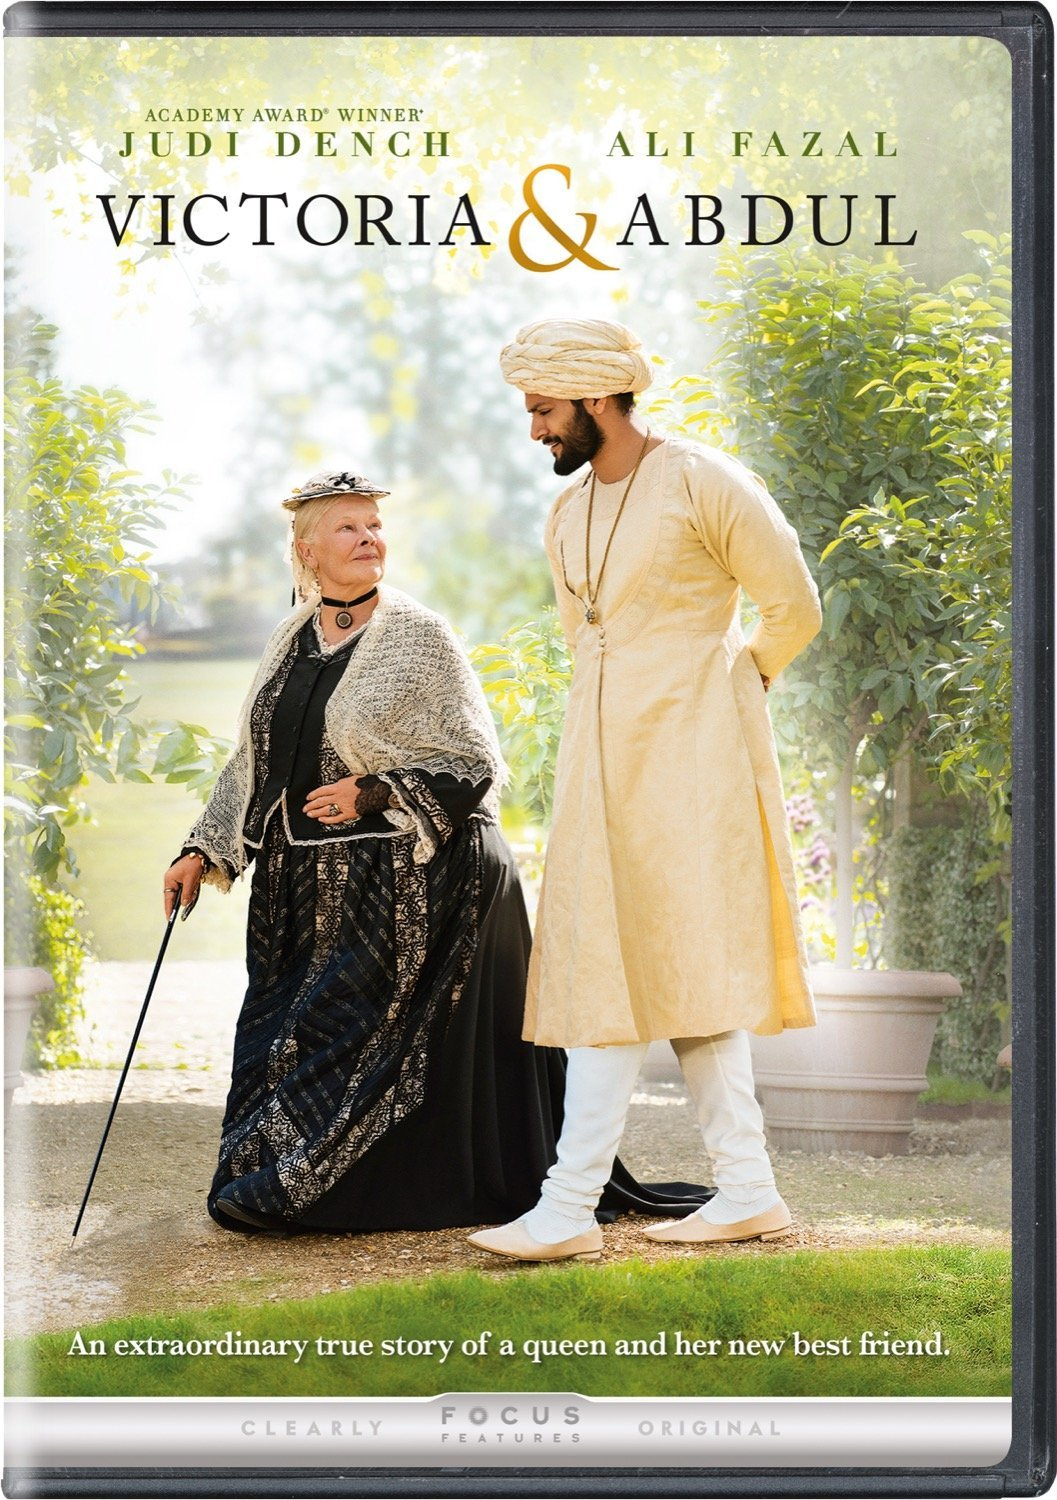 Victoria and Abdul DVD Cover-copyrighted imager